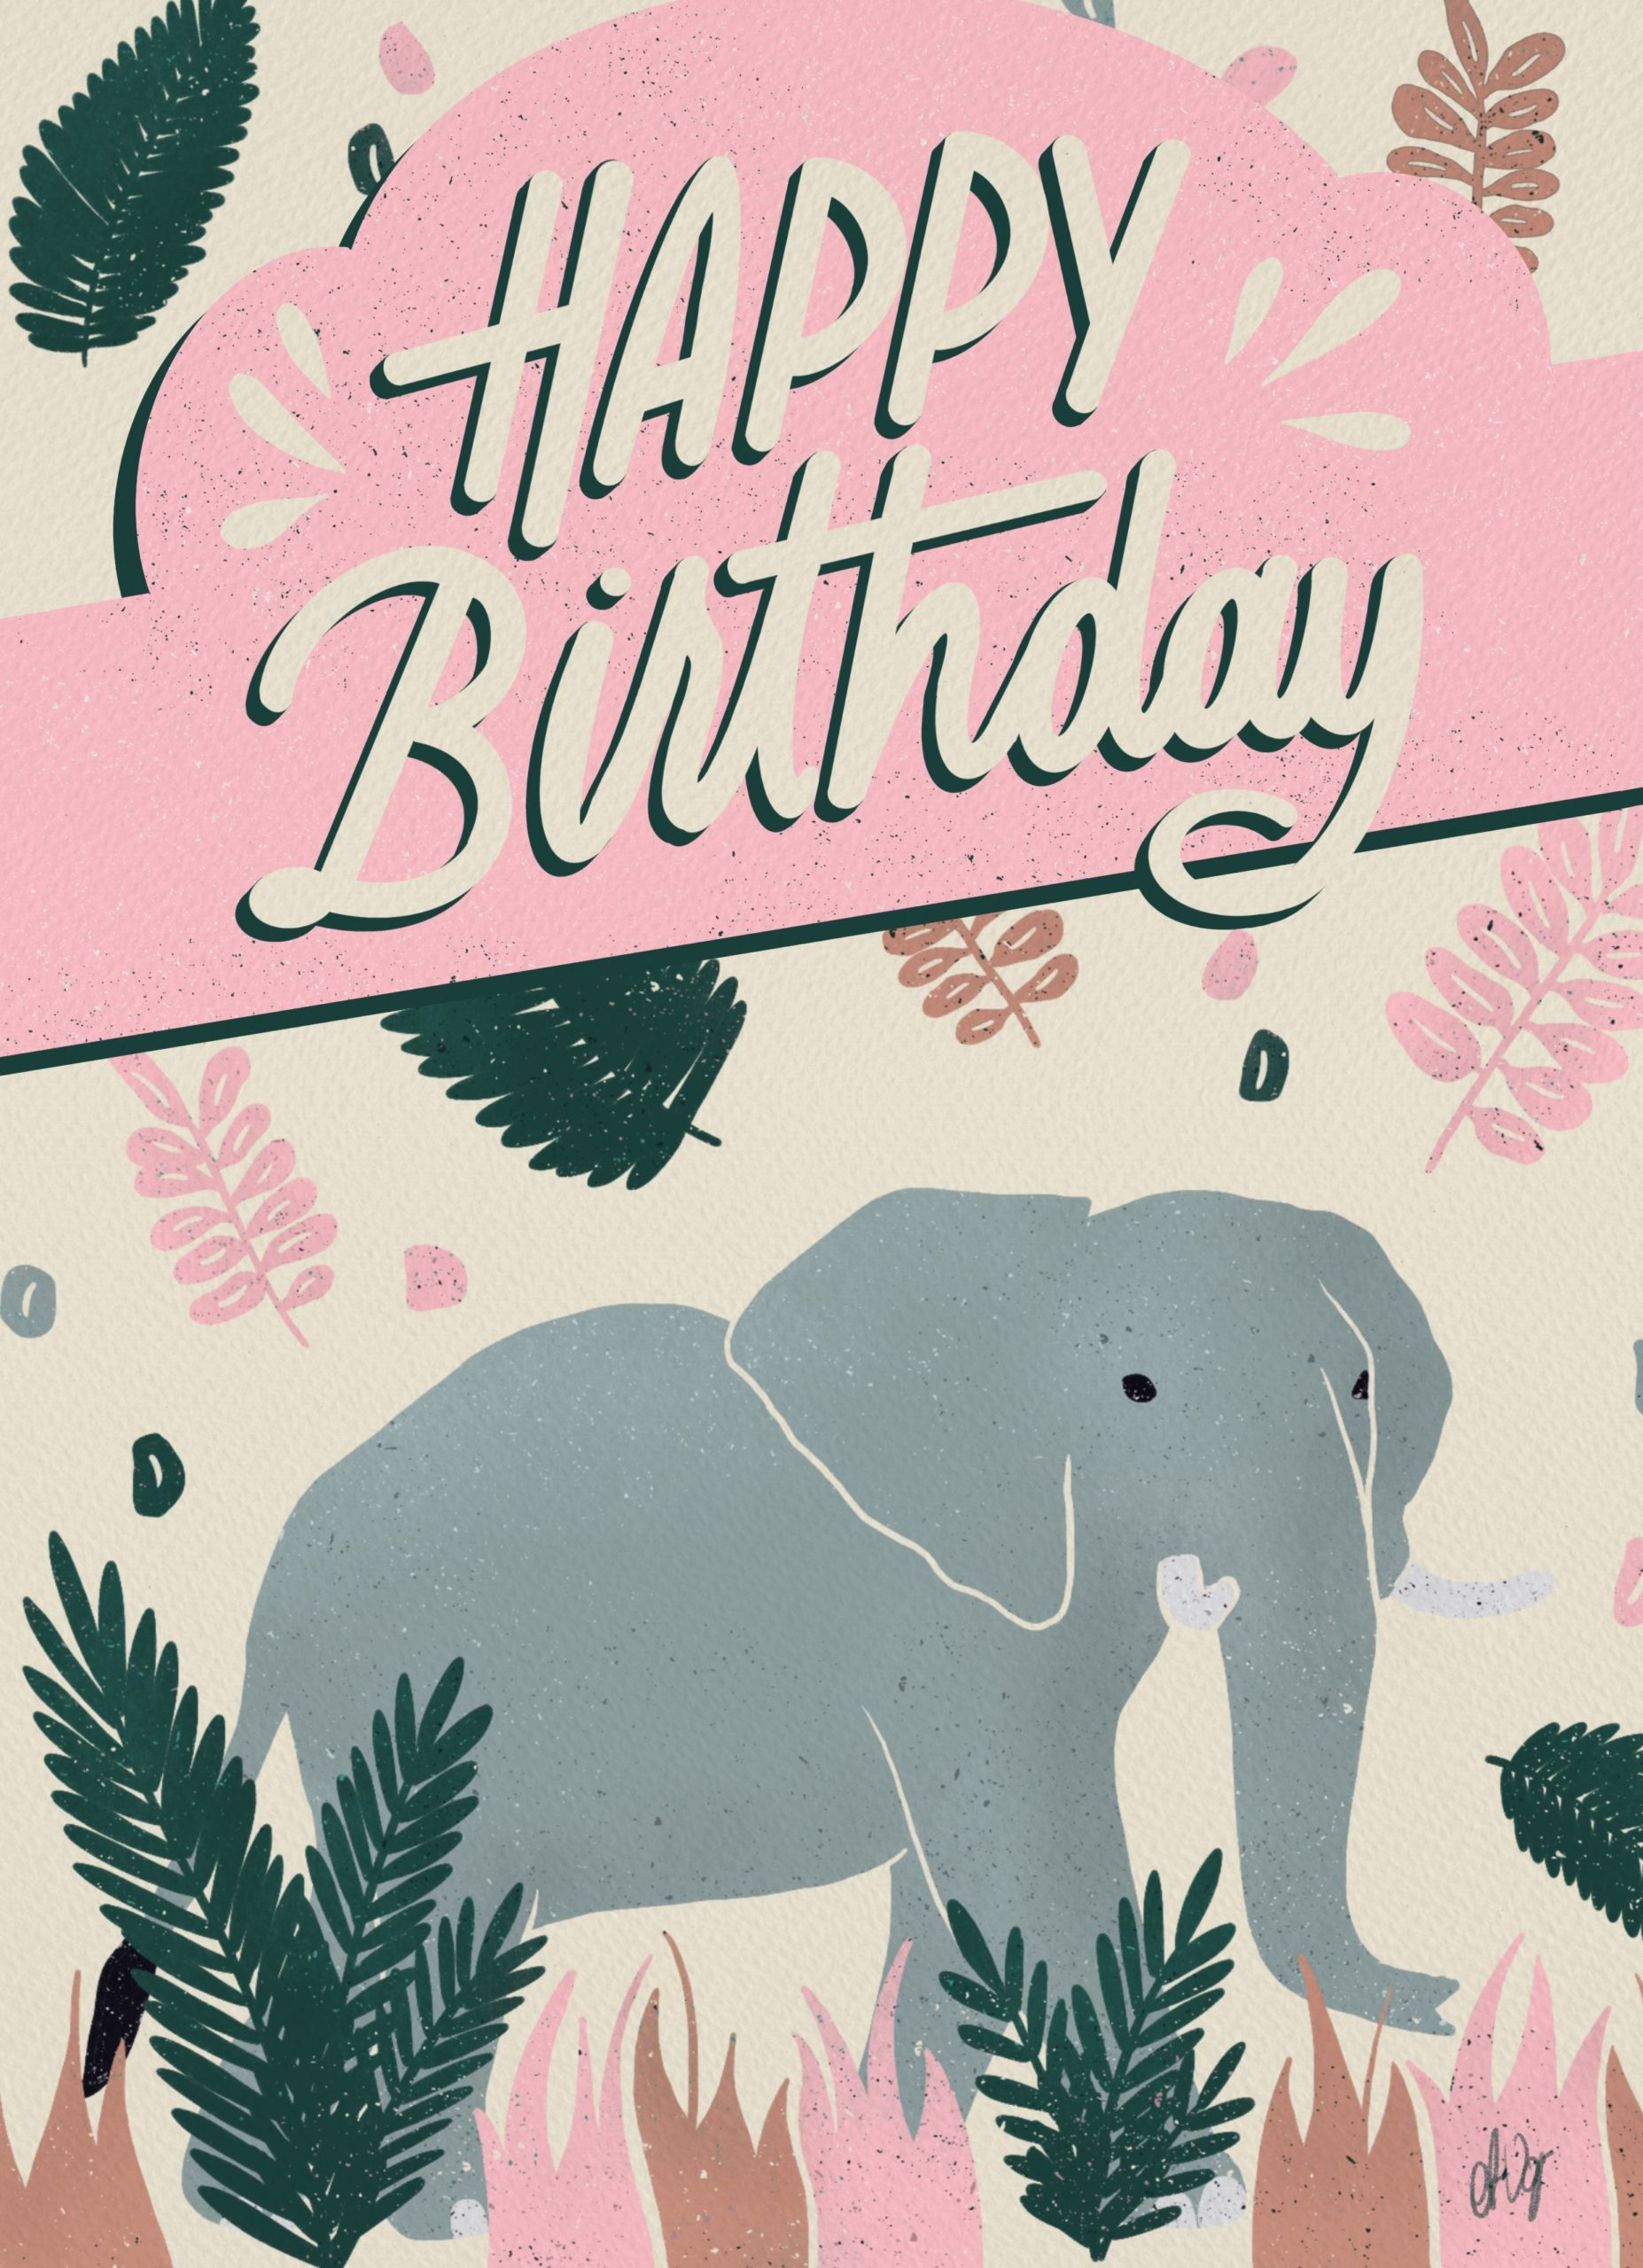 Elefant_Happy_Birthday_